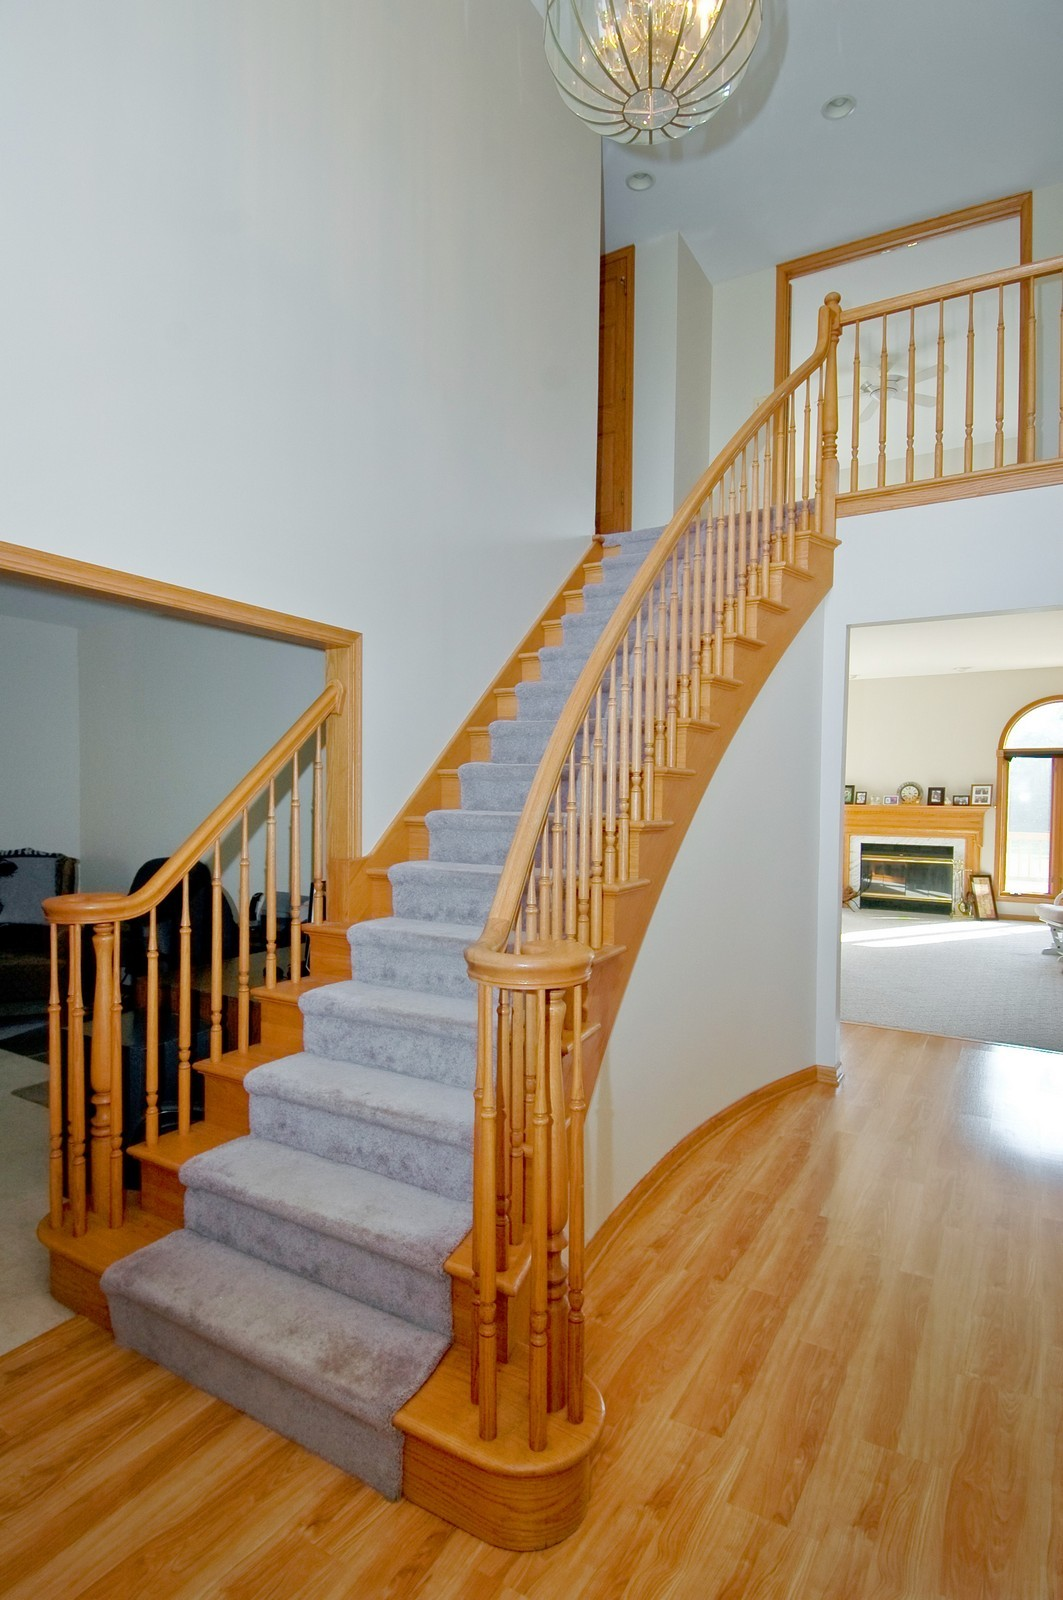 Real Estate Photography - 7N598 Whirlaway Dr, St Charles, IL, 60175 - Staircase